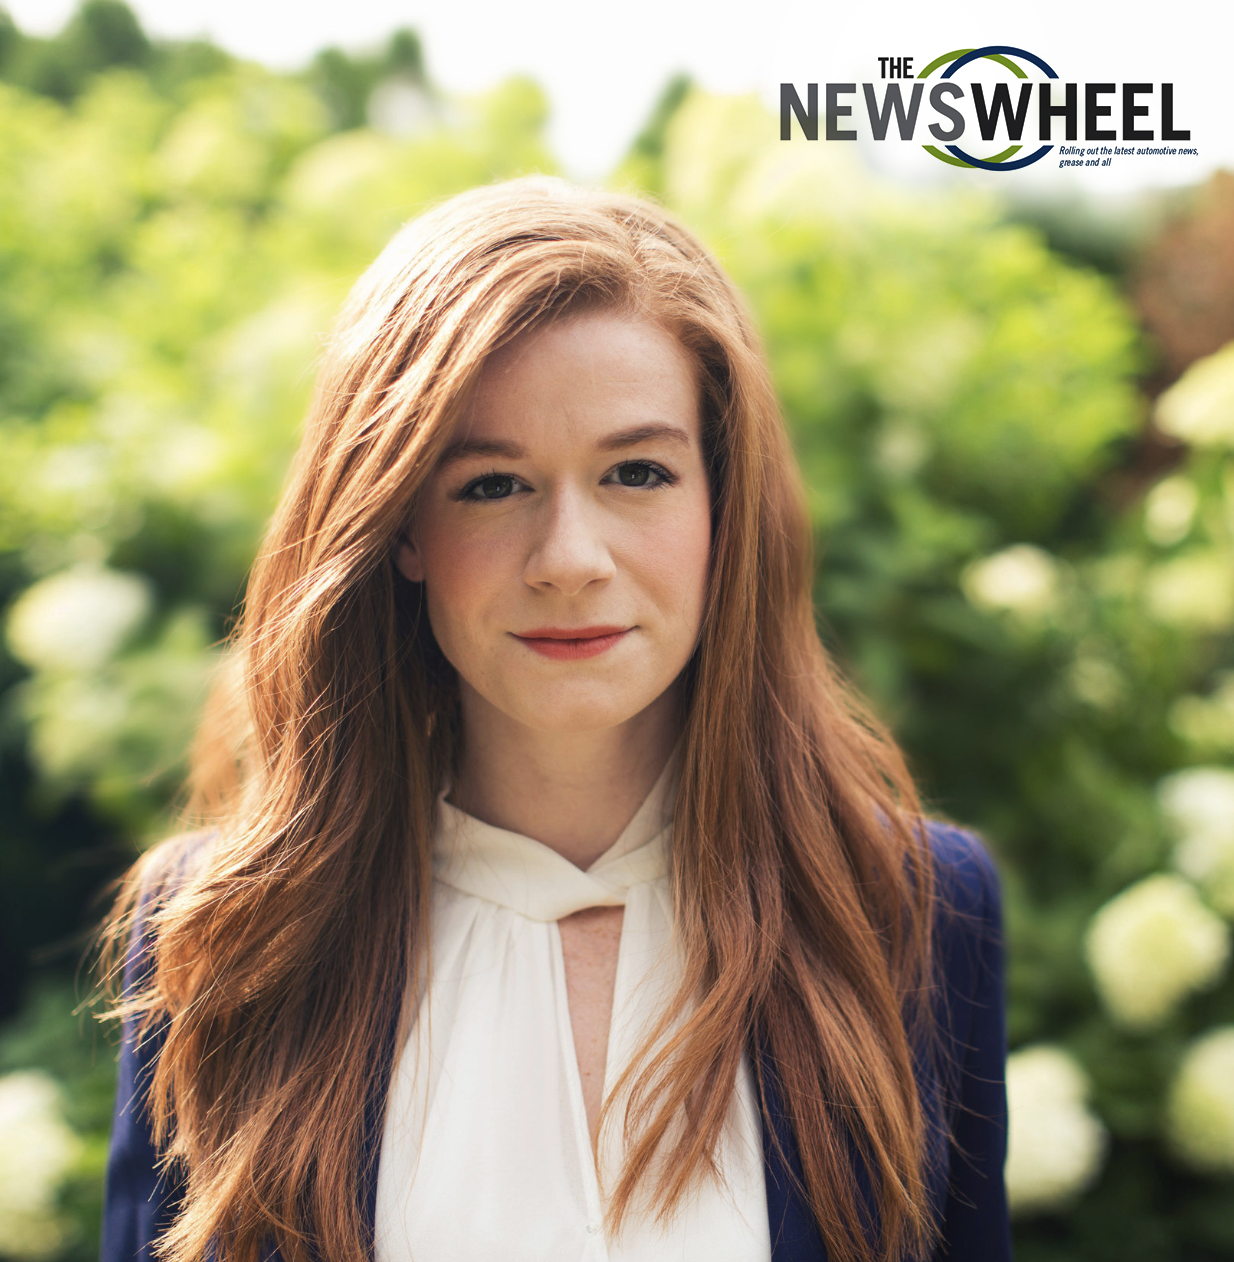 READ A Q&A WITH MALLORY MCMORROW ON SEXISM AND FEMALE REPRESENTATION IN AUTOMOTIVE   Mallory sat down to talk with The News Wheel about her expeiences working at Mazda and in the automotive industry.   Read More  >